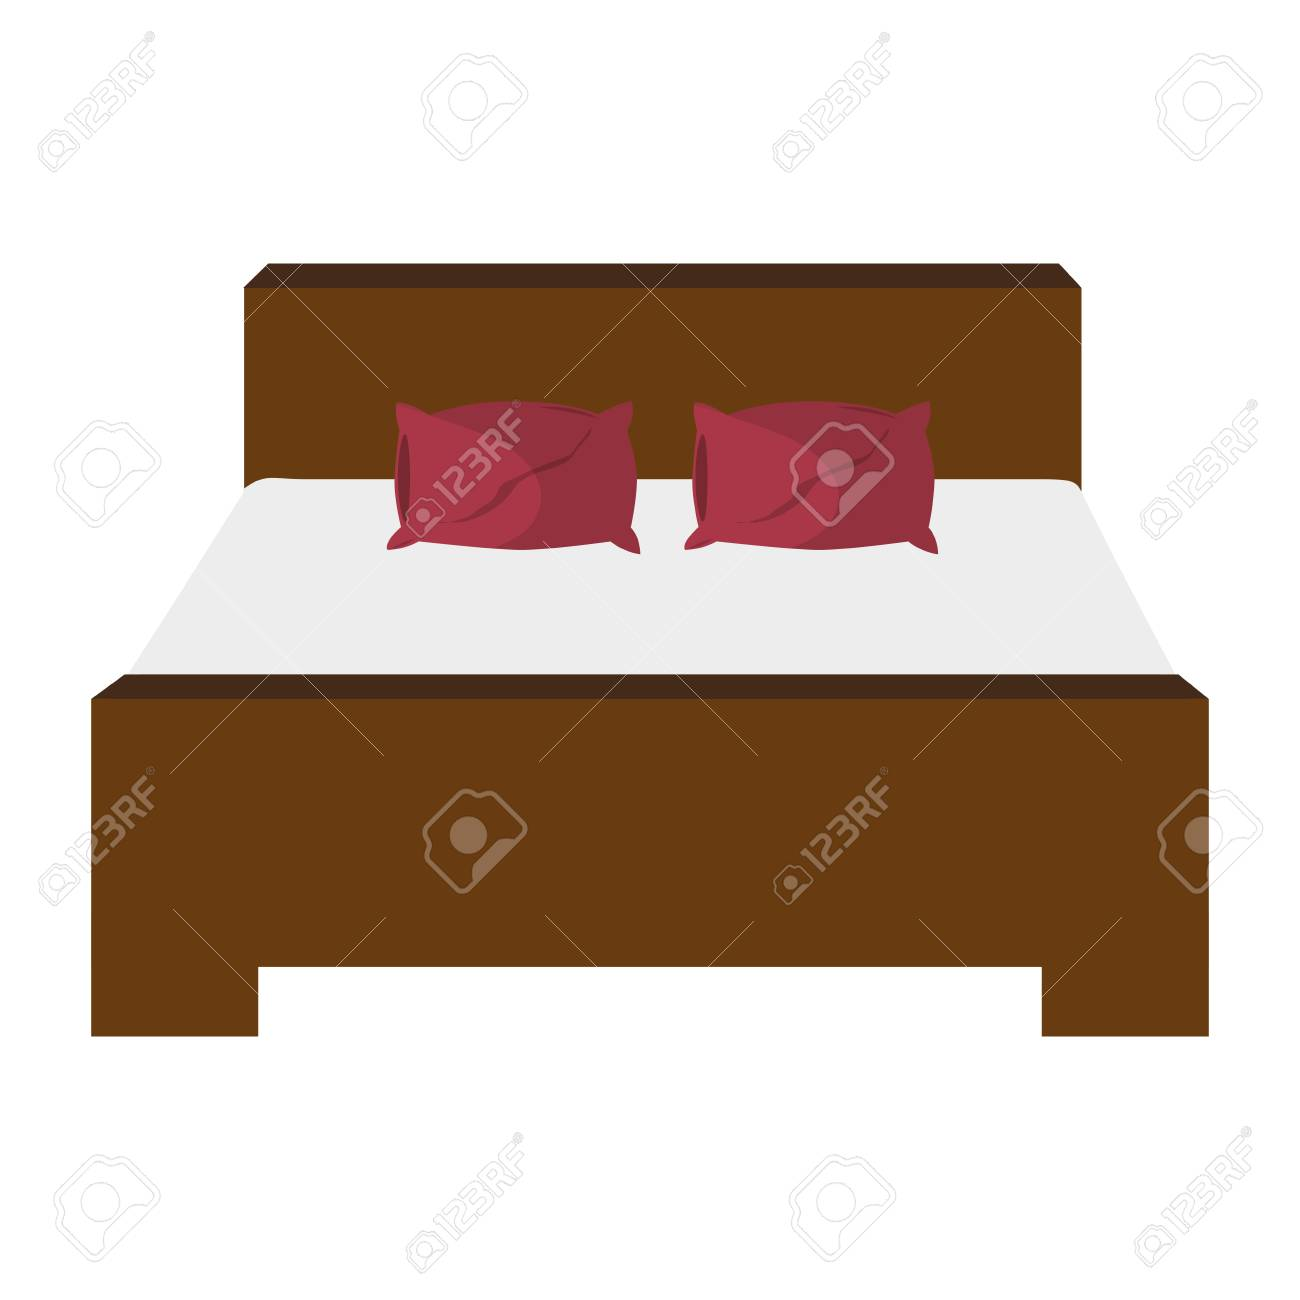 Flat Design Double Bed Icon Vector Illustration Royalty Free